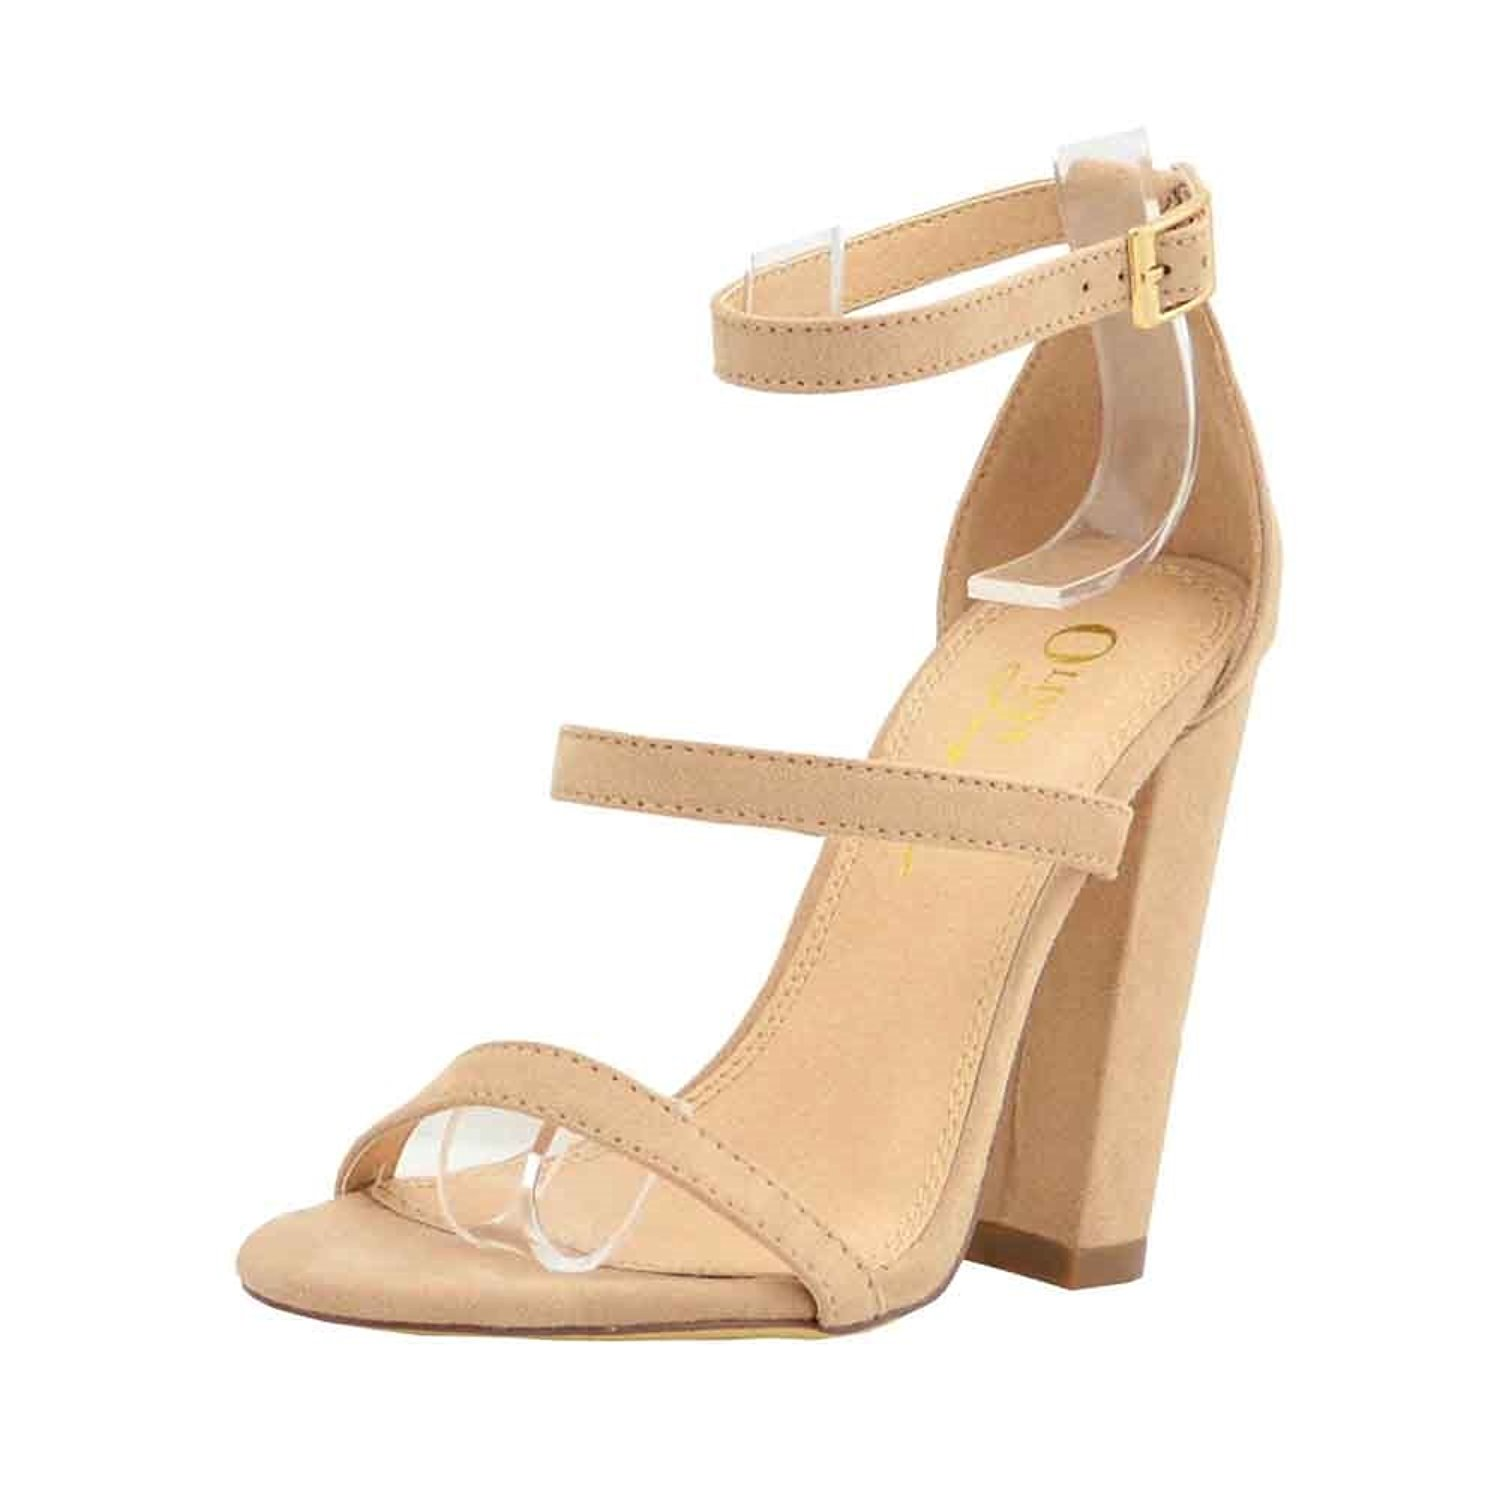 Olivia Jaymes Women's Casual Sandal | Round Toe | Triple Band Ankle Strap | Block Chunky Heel Sandals